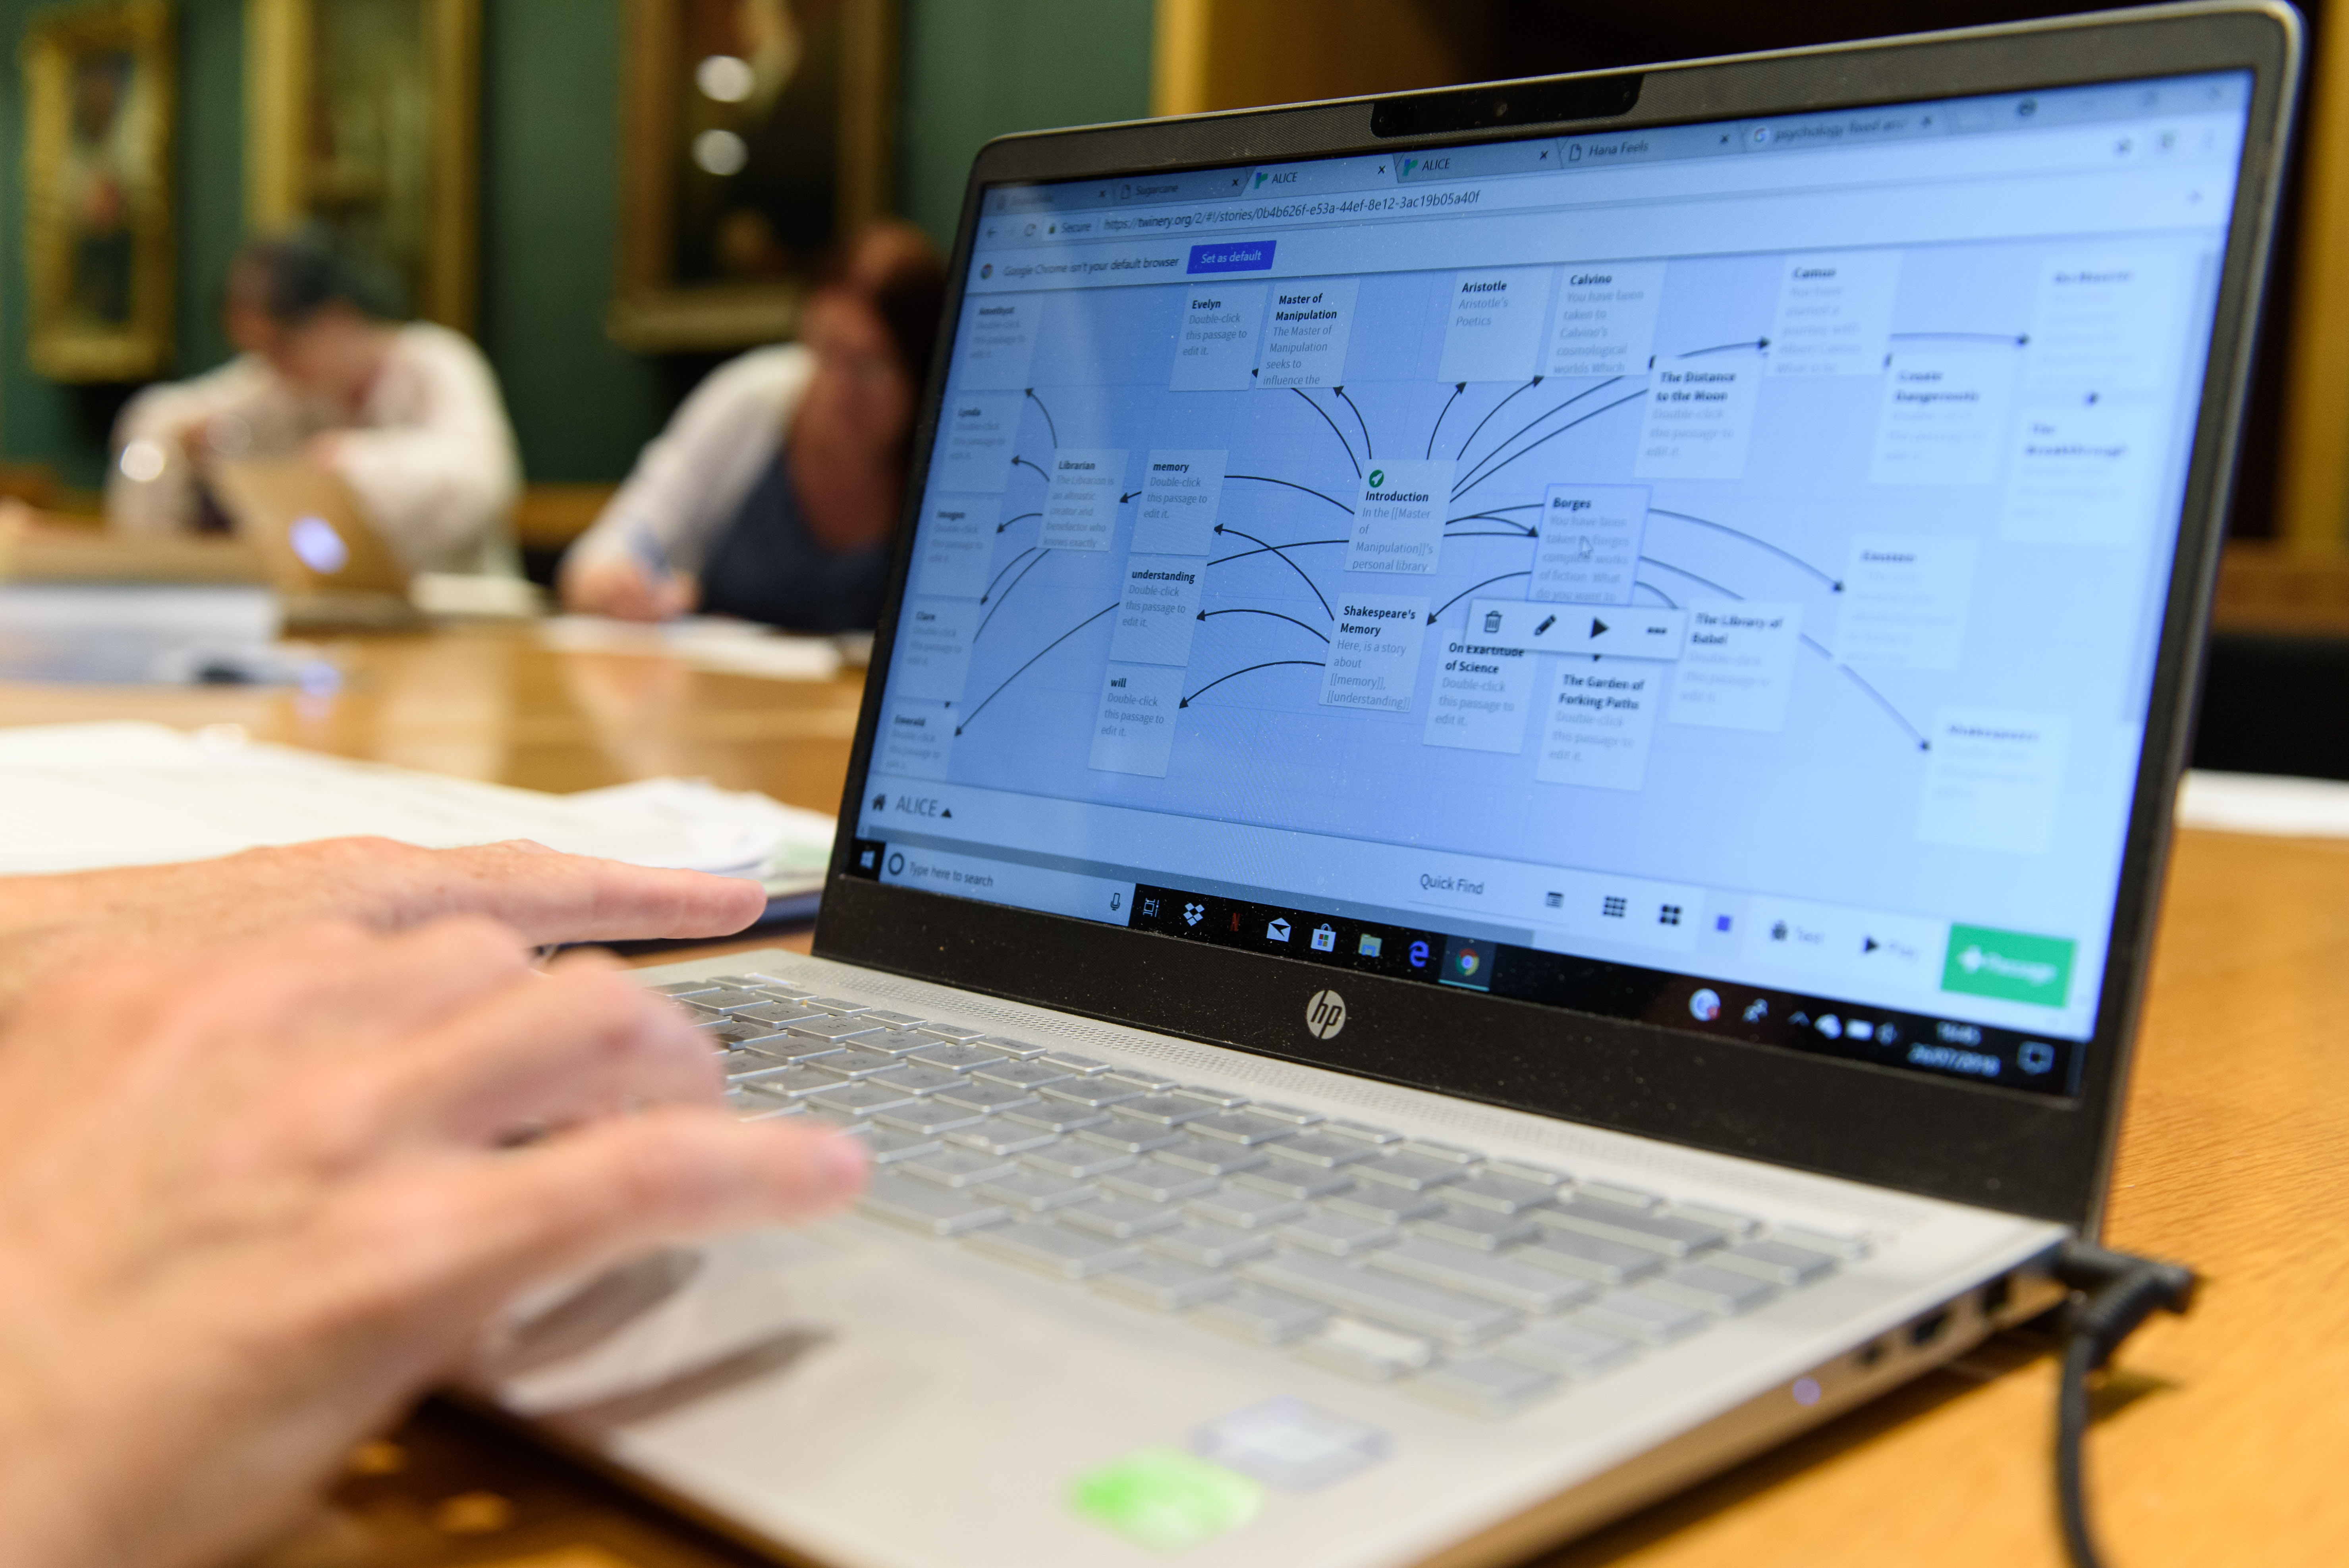 A laptop screen displaying a story map